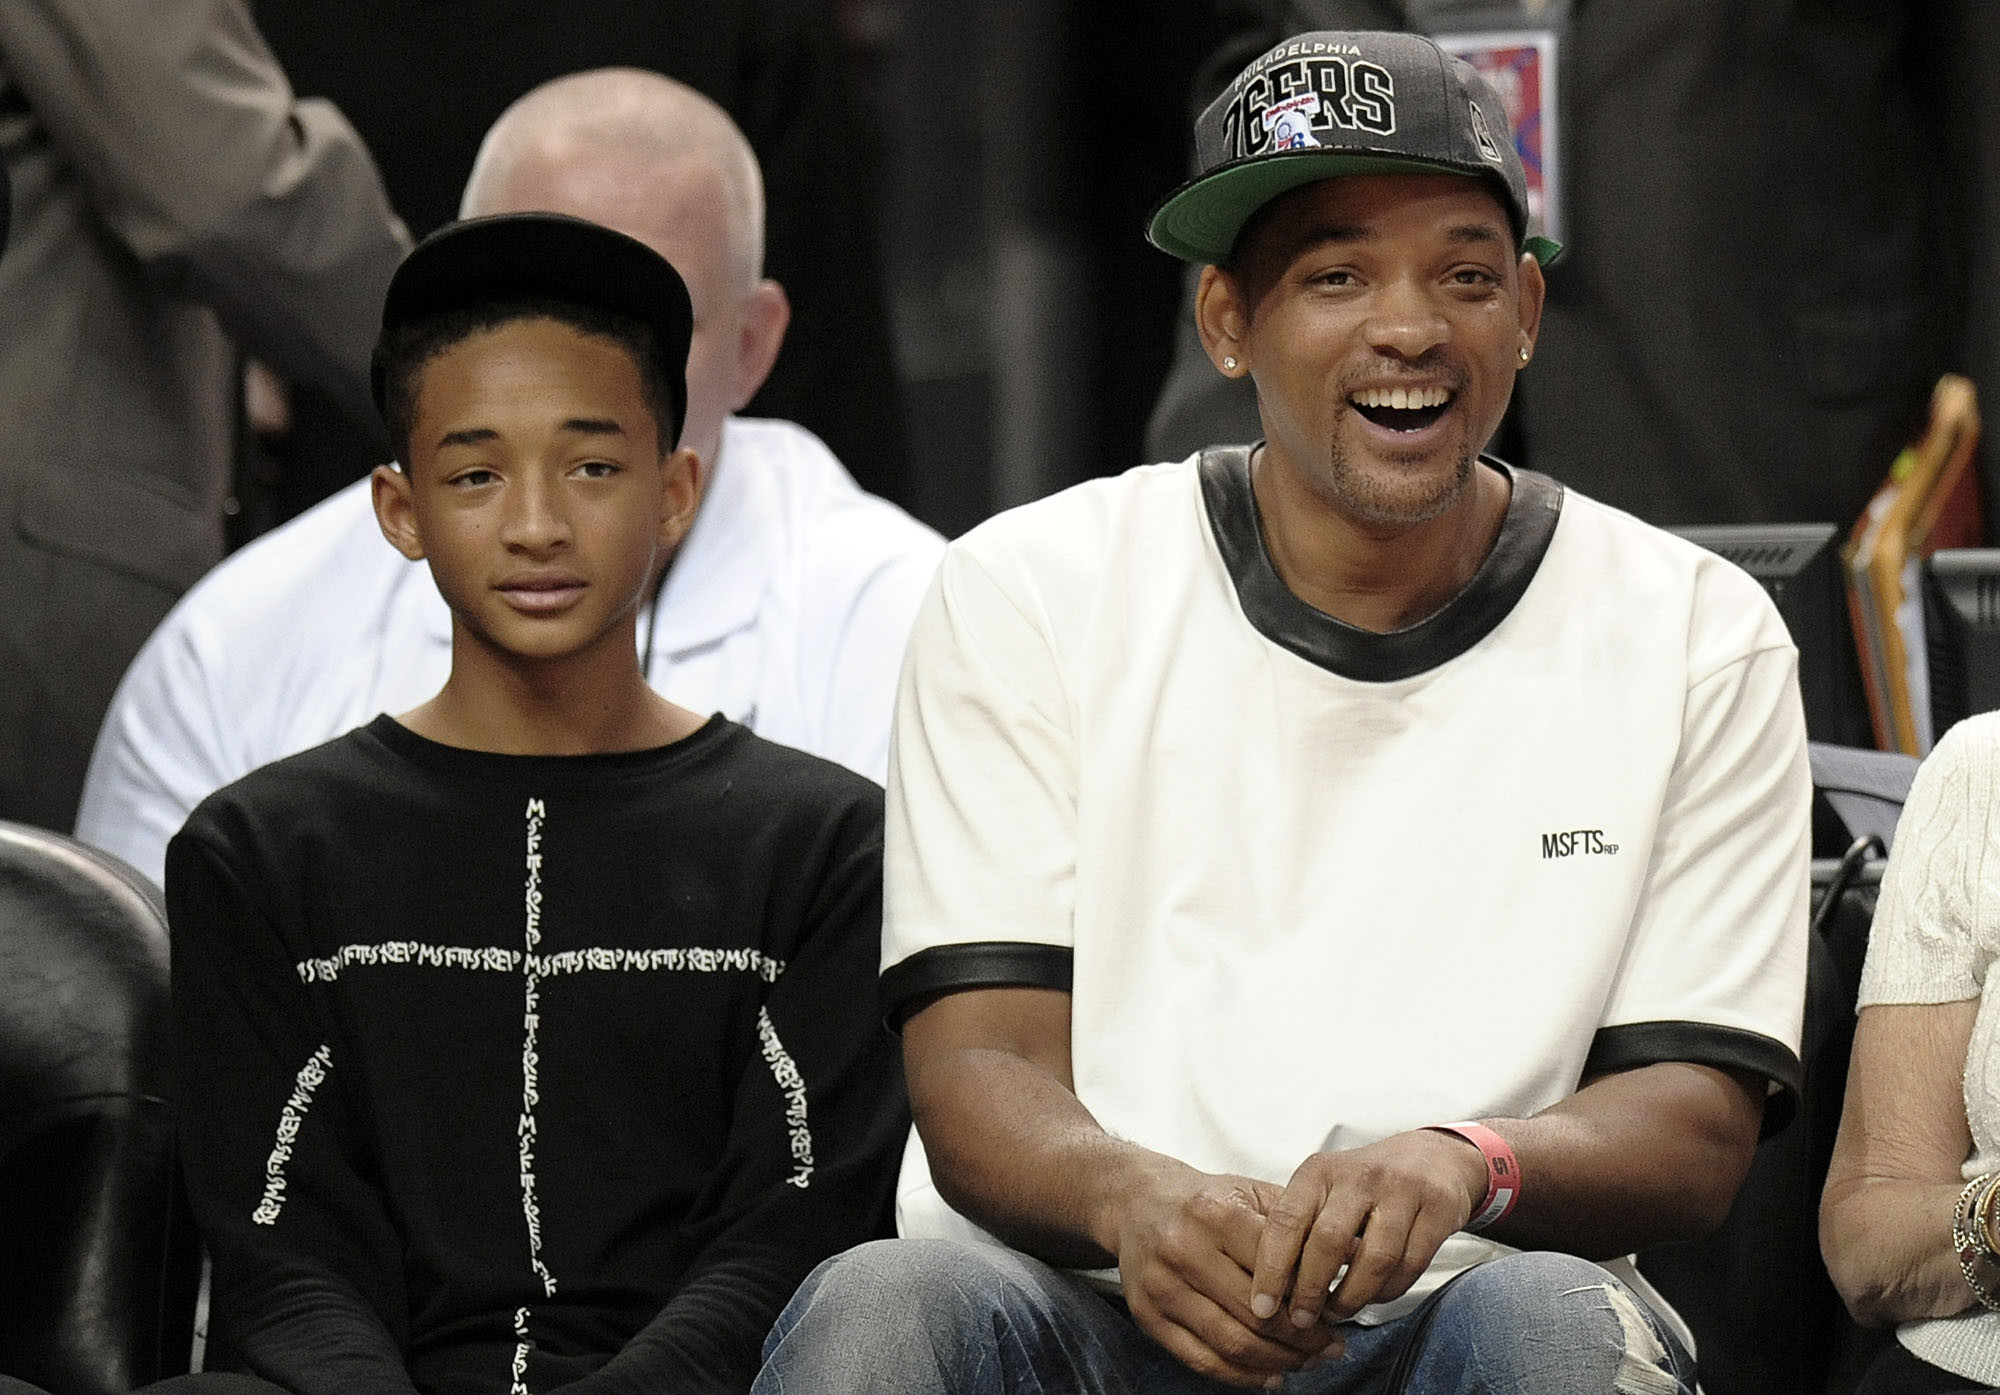 Celebs spotted at Miami Heat games - Will Smith (with son, Jaden)